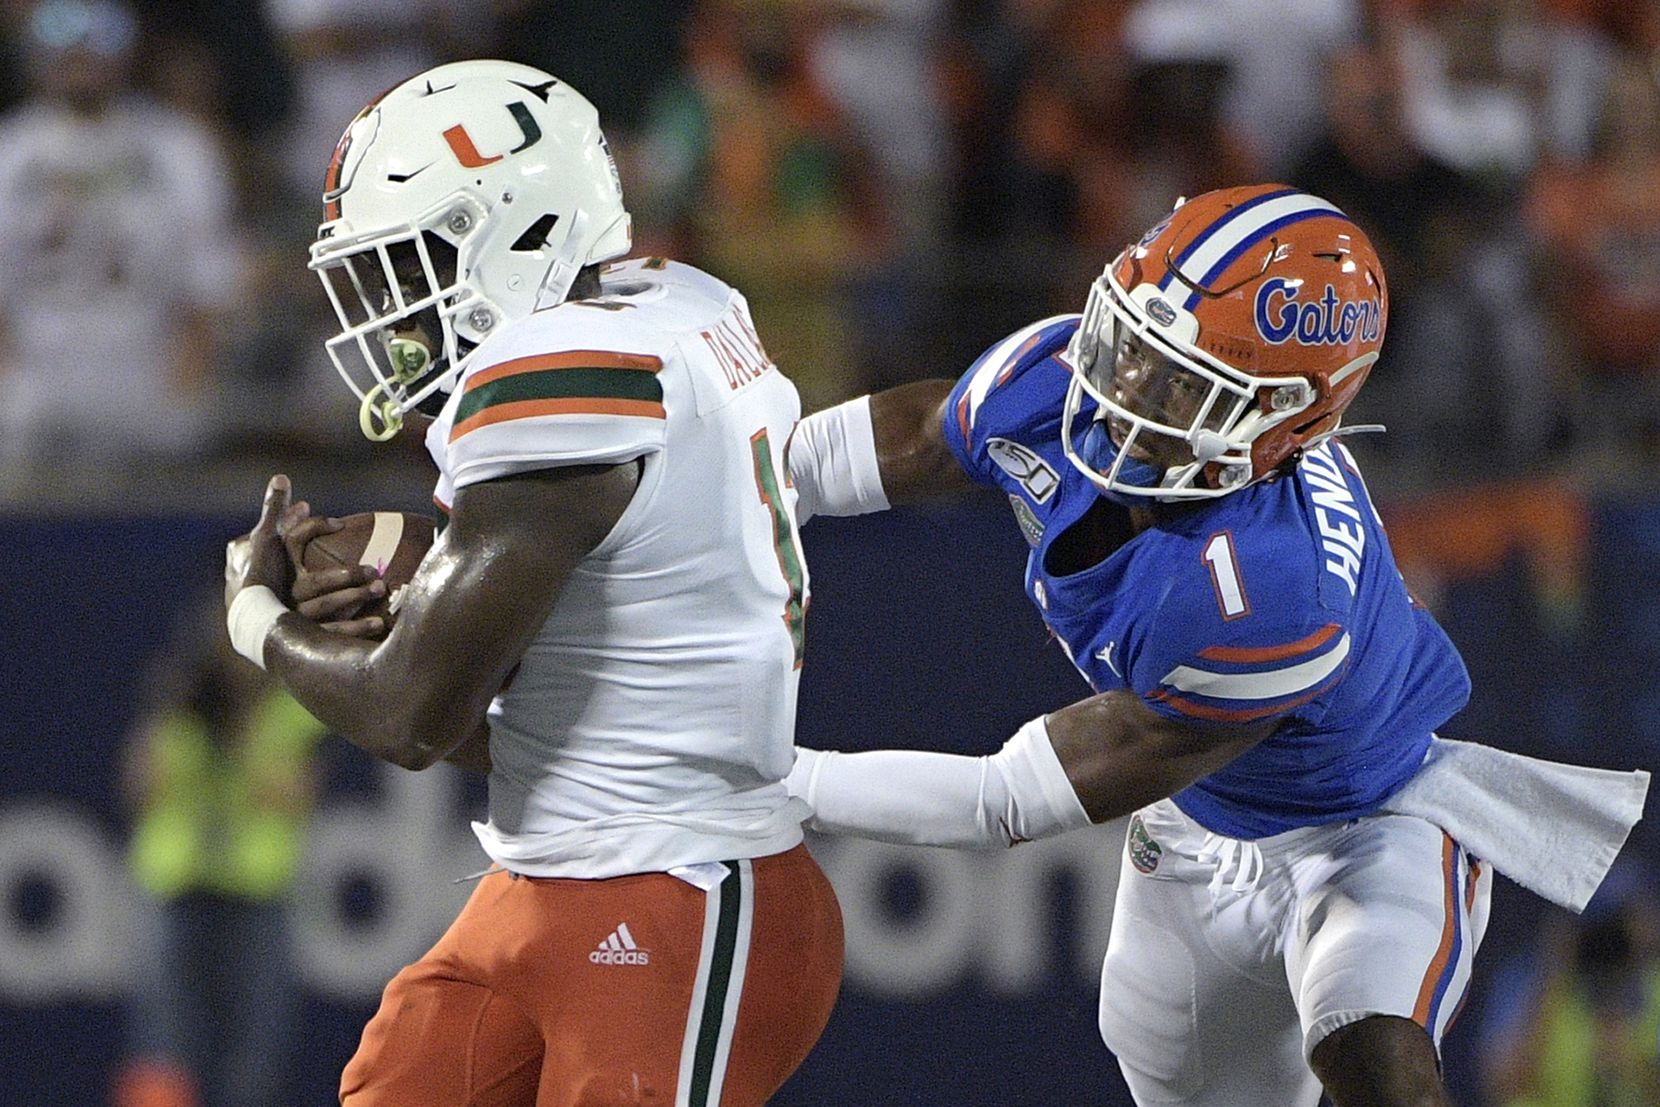 Miami running back DeeJay Dallas (13) rushes for yardage as Florida defensive back CJ Henderson (1) defends during the first half of an NCAA college football game Saturday, Aug. 24, 2019, in Orlando, Fla. (AP Photo/Phelan M. Ebenhack)